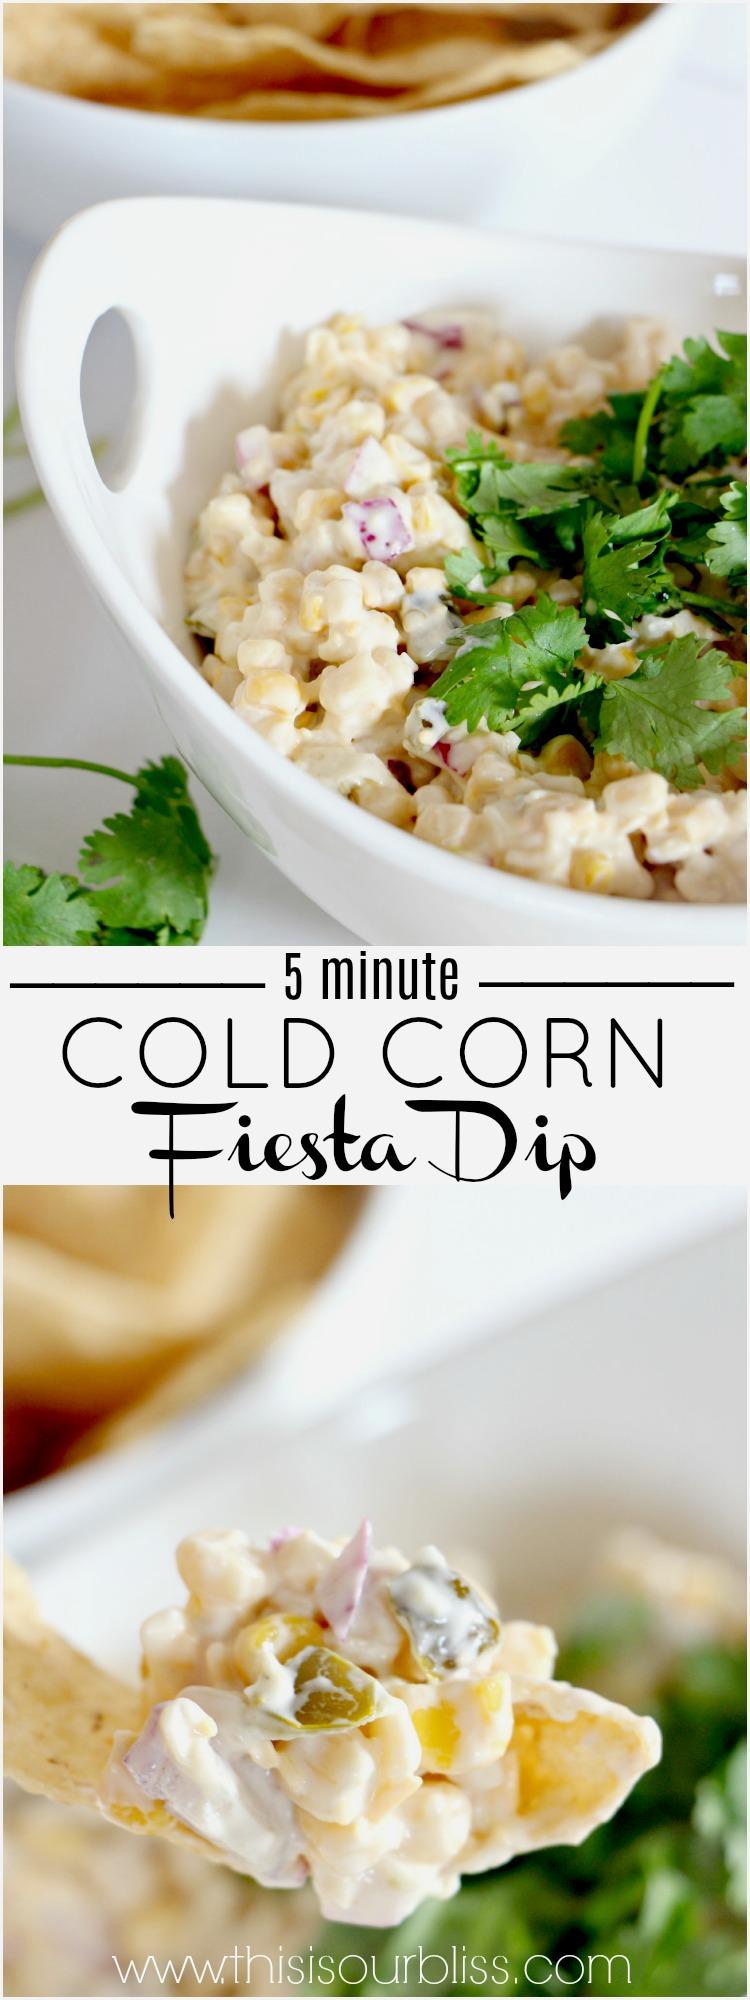 5 Minute Recipe | Cold Corn Fiesta Dip + 11 other Simple Summer Picnic and Easy Entertaining Ideas! | via www.thisisourbliss.com